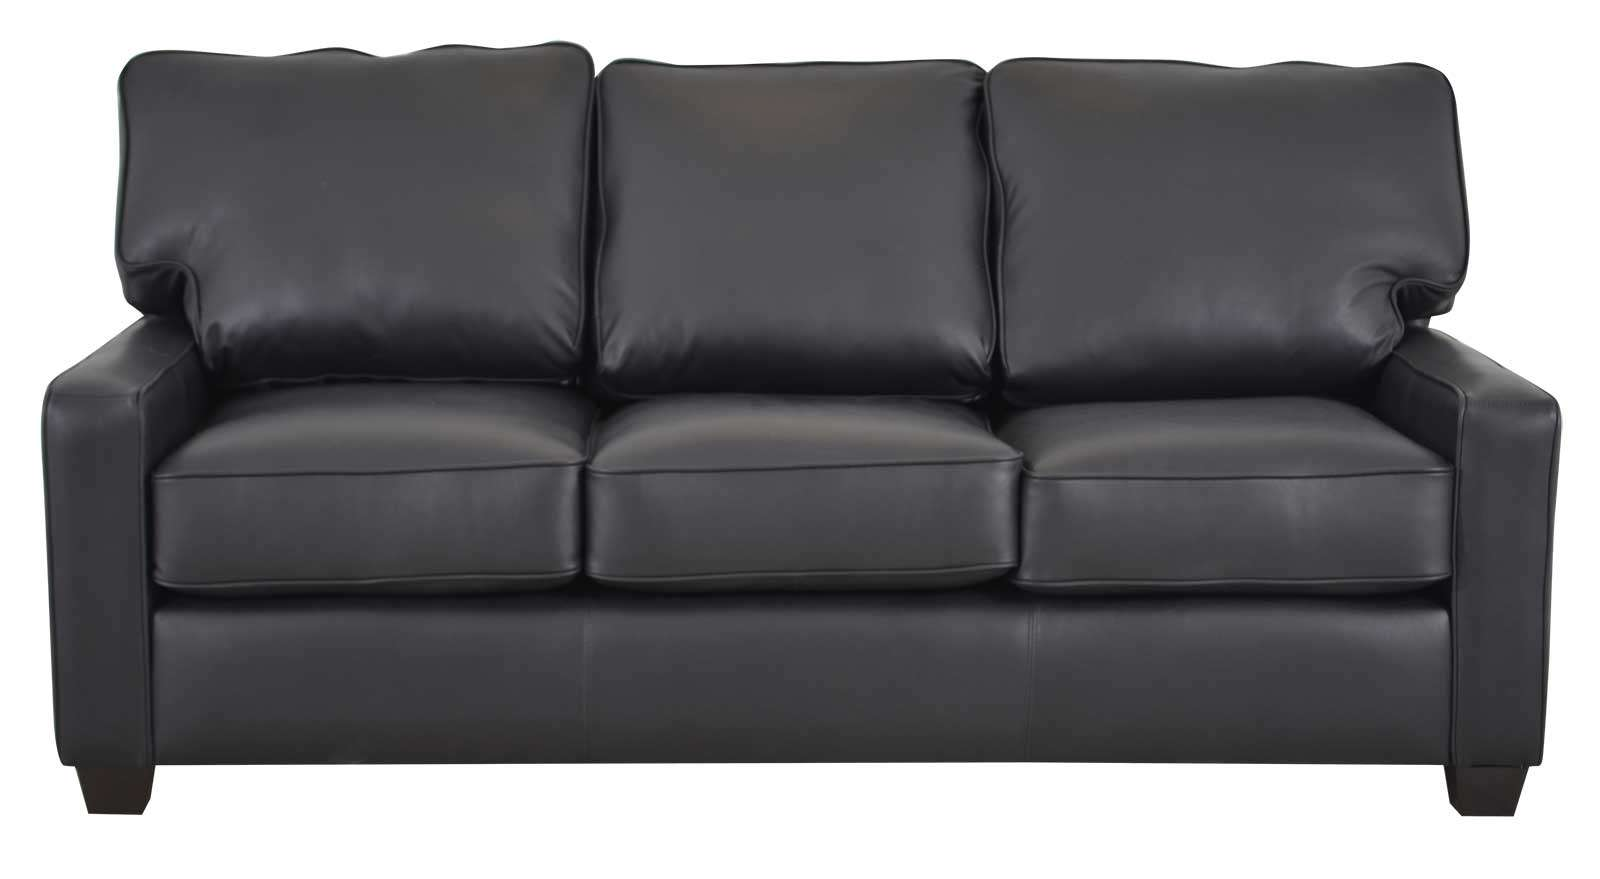 Leather sofa black using black leather sofas for your home for Sofa company